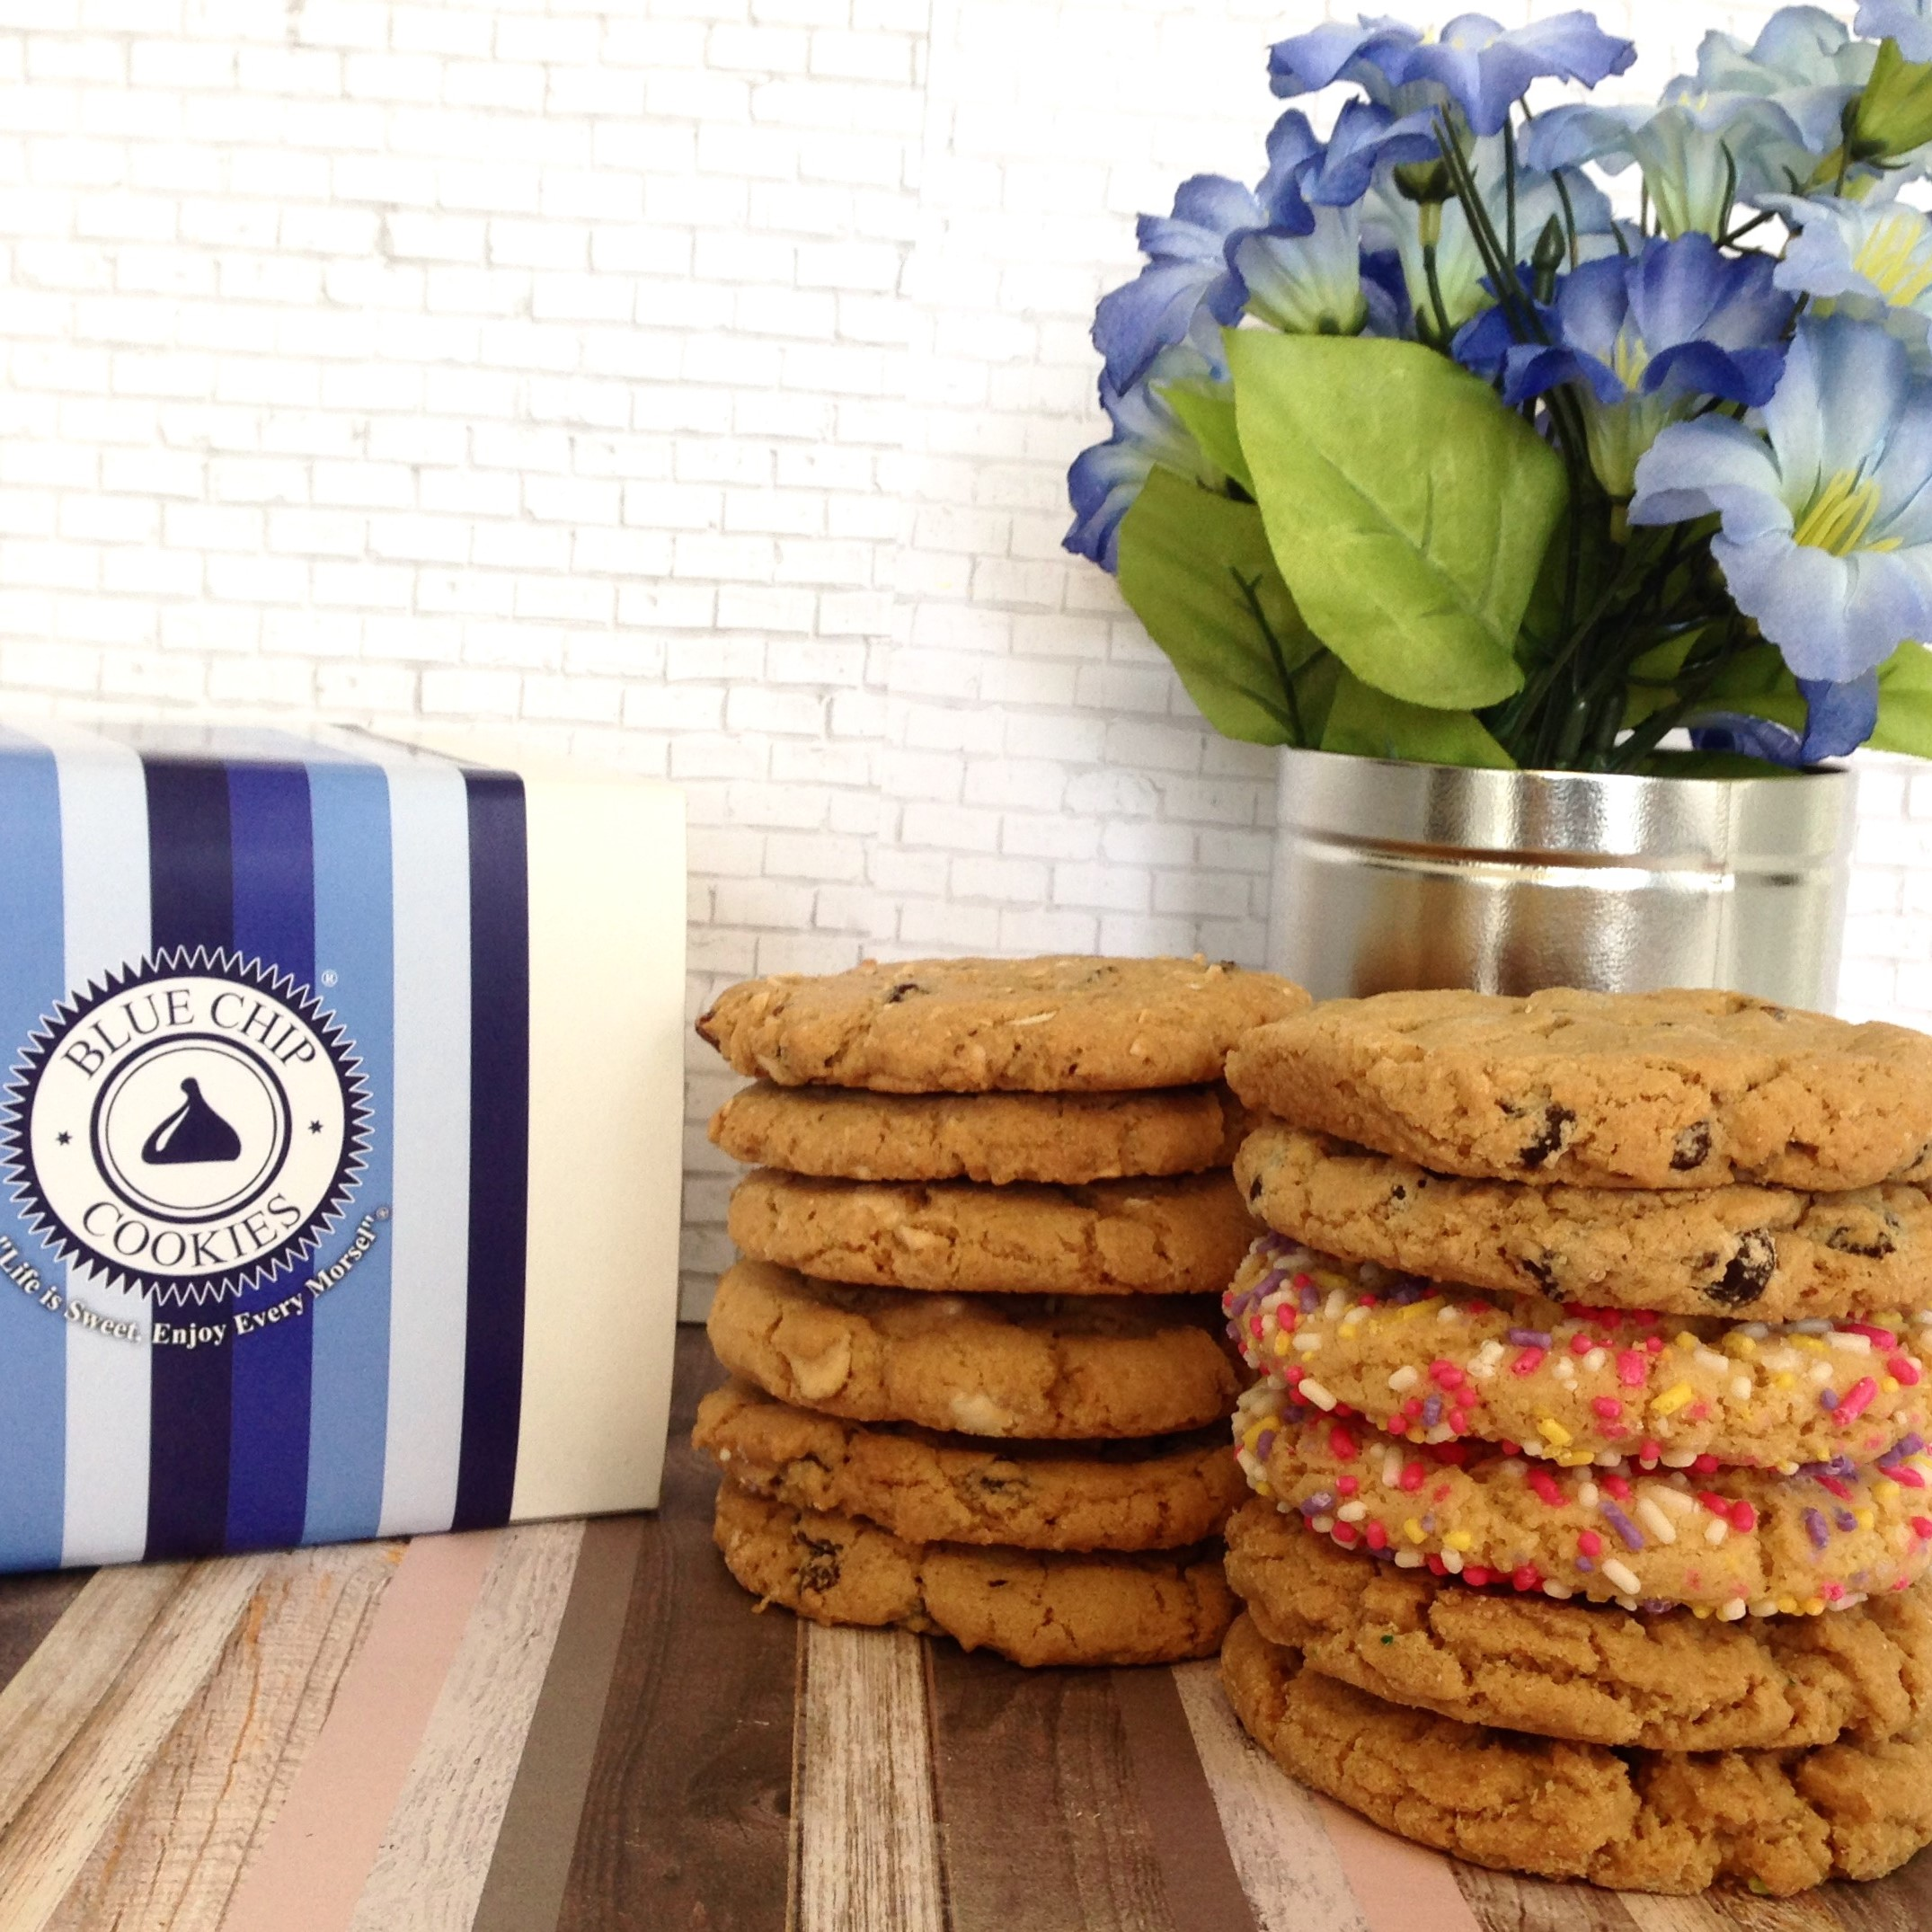 Best Gourmet Cookies Online, Best Corporate Cookie Gifts